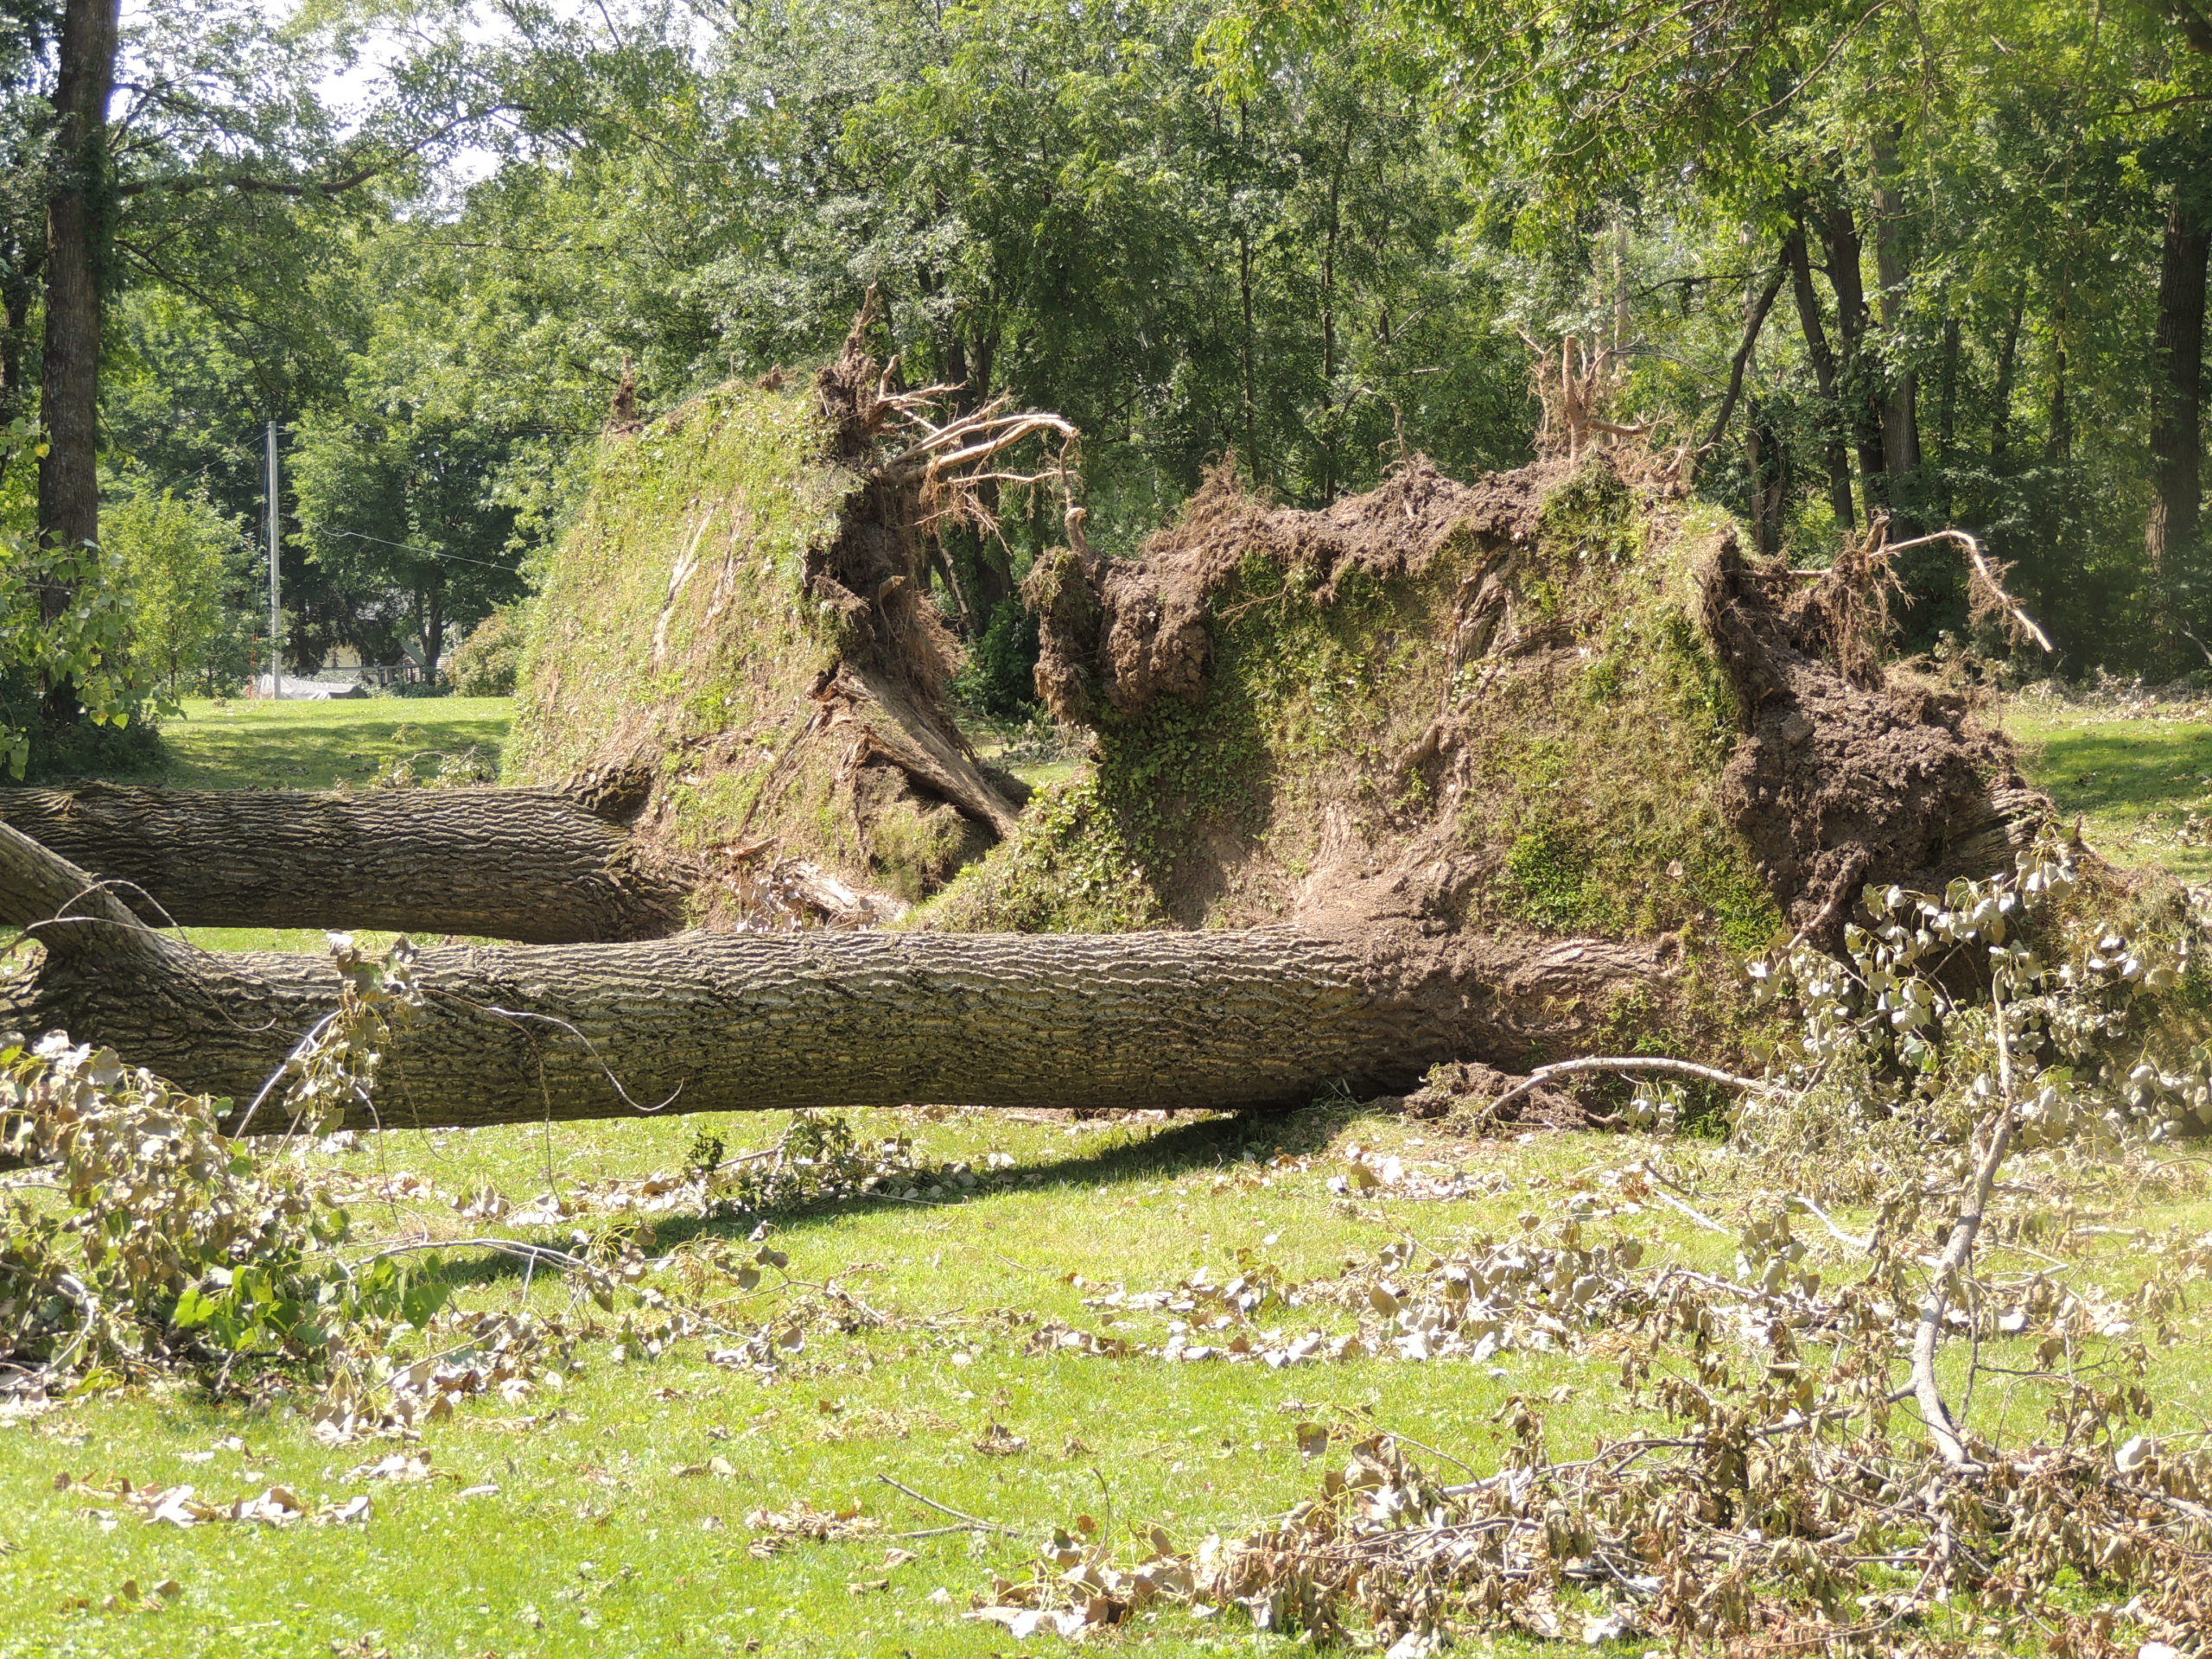 Photo of uprooted trees